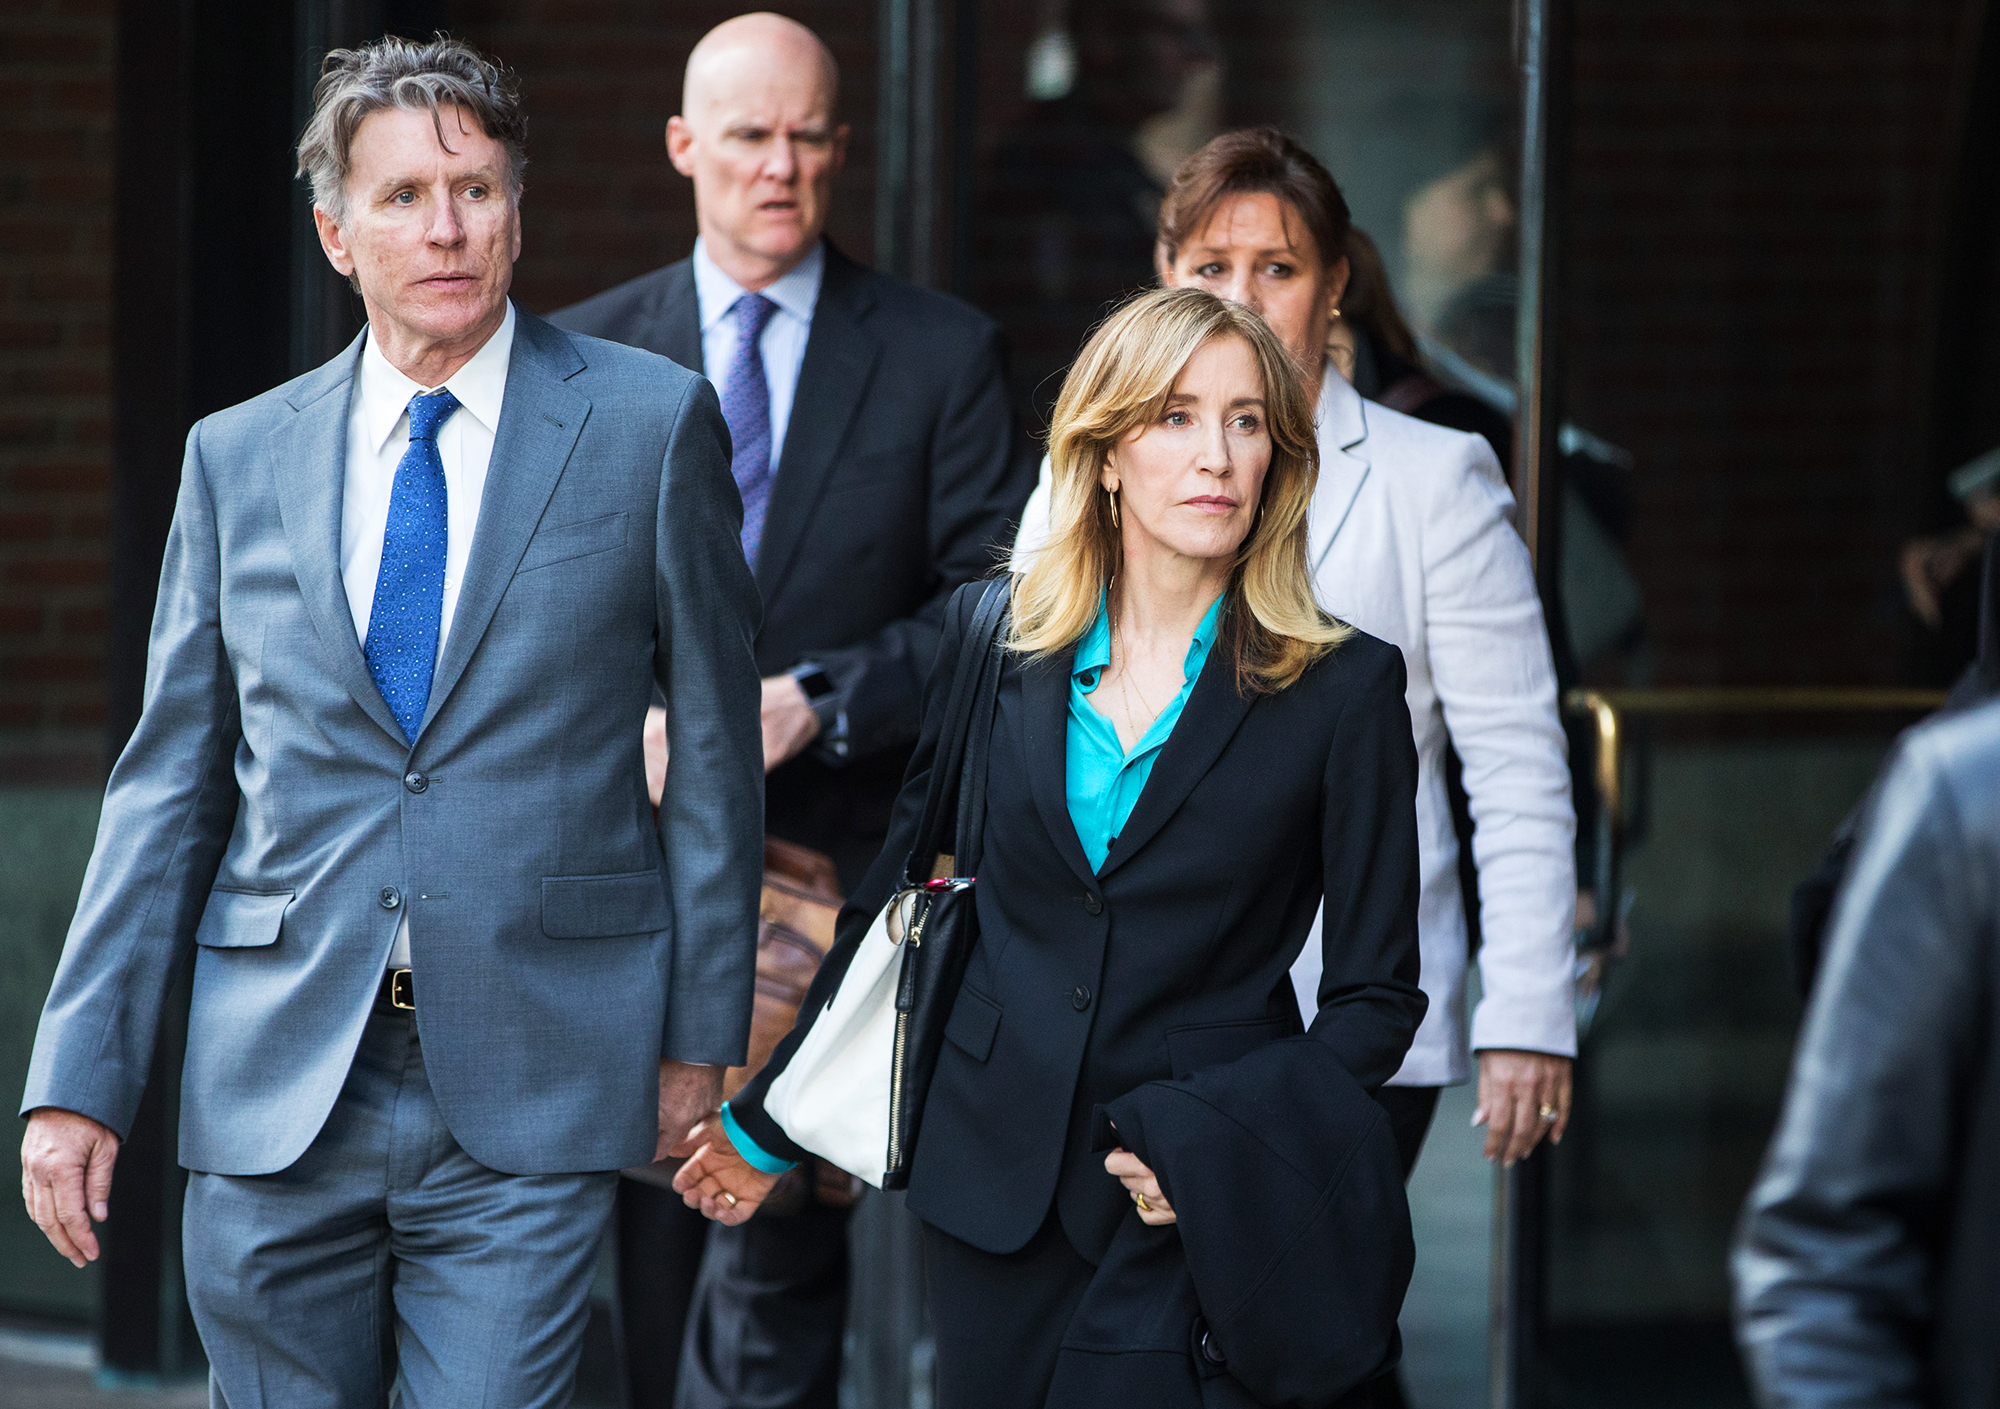 felicity-huffman-court - The Desperate Housewives alum arrived at the same courthouse on April 3, 2019, in a black peacoat, a black blazer, matching slacks and a turquoise blouse. Her husband, William H. Macy, was not present.